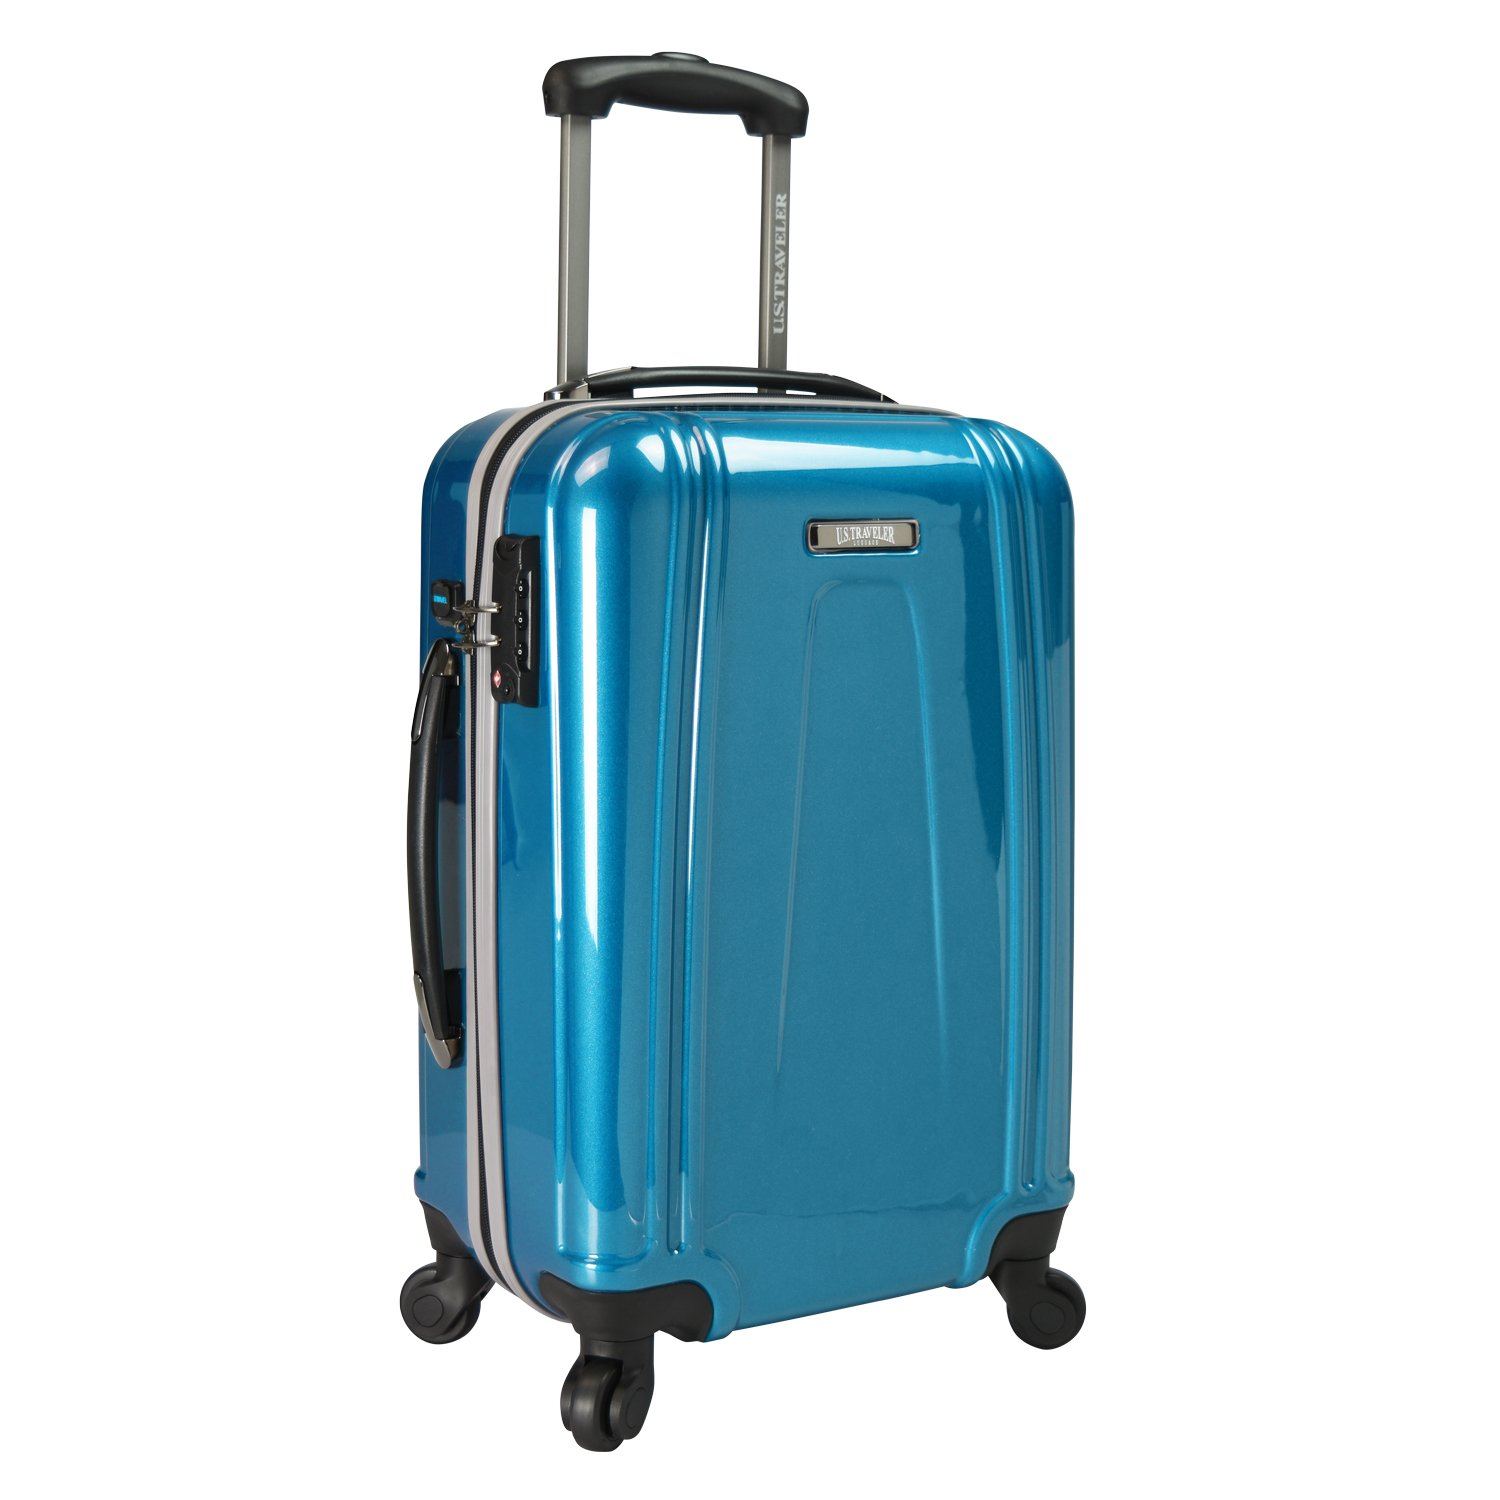 U.S. Traveler US09037E22 22 USB Port EZ-Charge Carry-On Spinner, Teal, One Size TRB3I